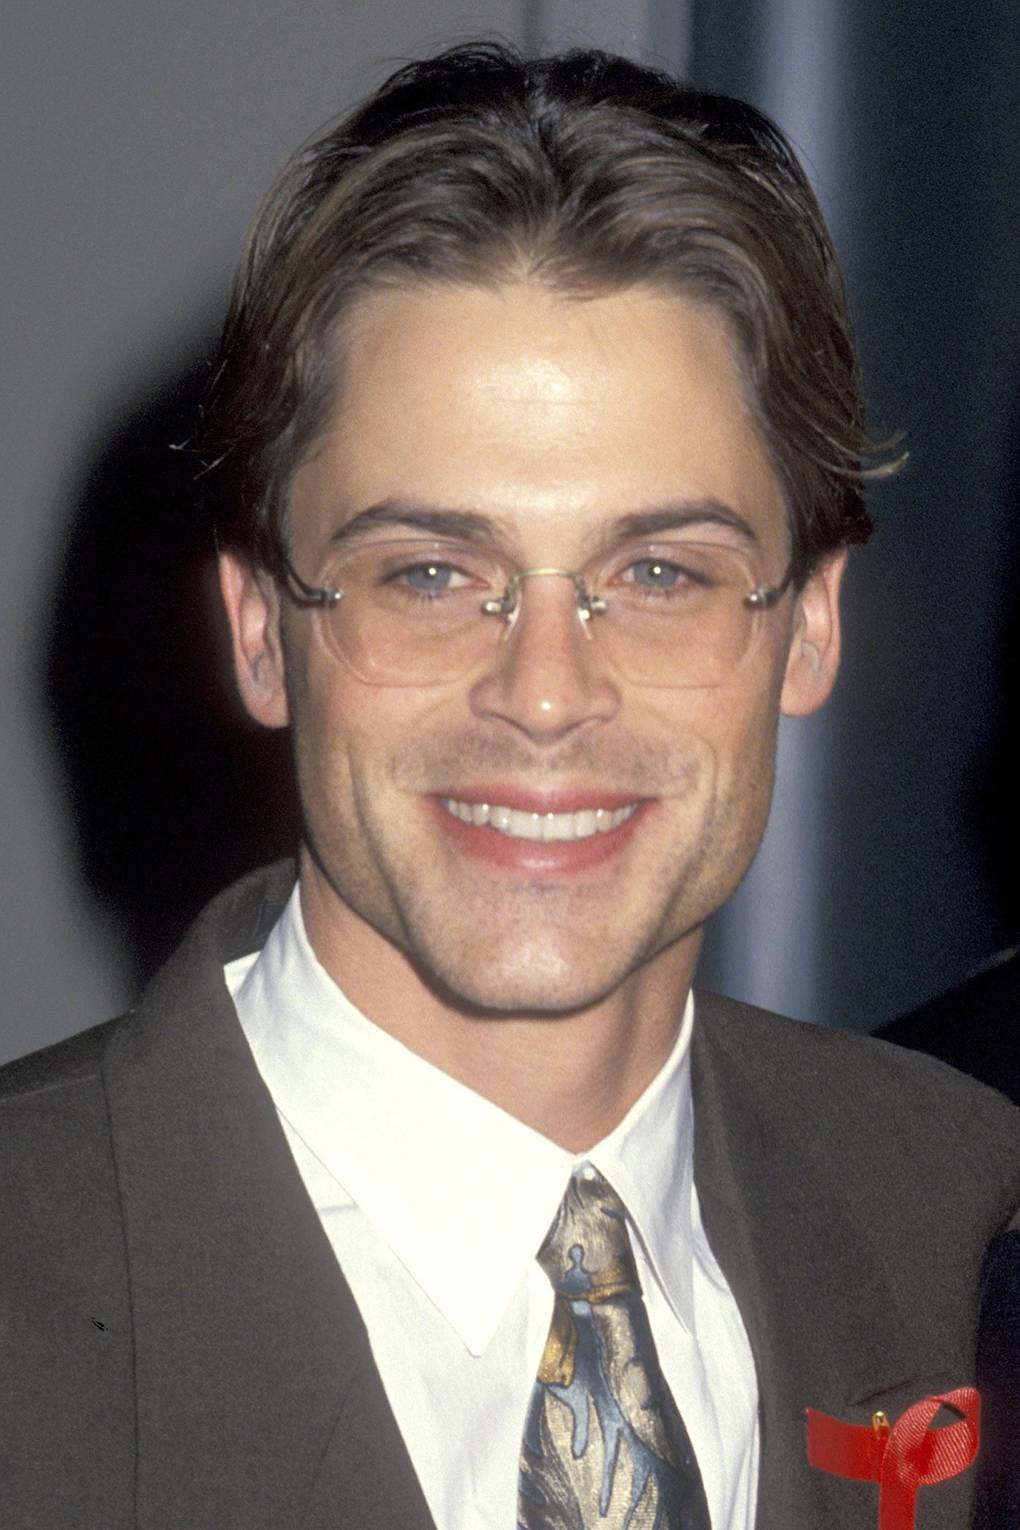 Hairstyles Rob Lowe